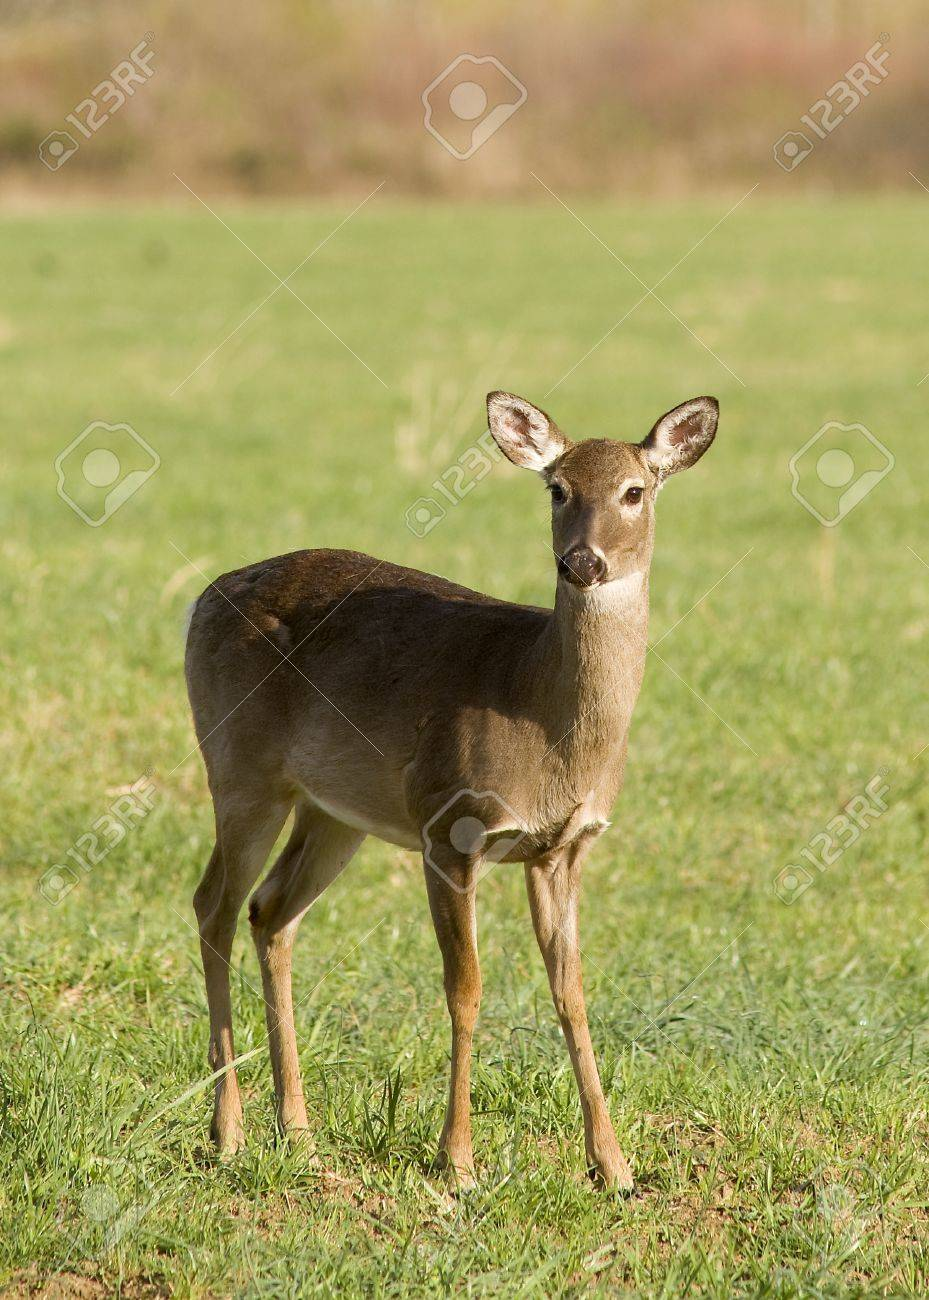 A White Tailed Deer (Odocoileus virginianus) in a field Stock Photo - 19254997